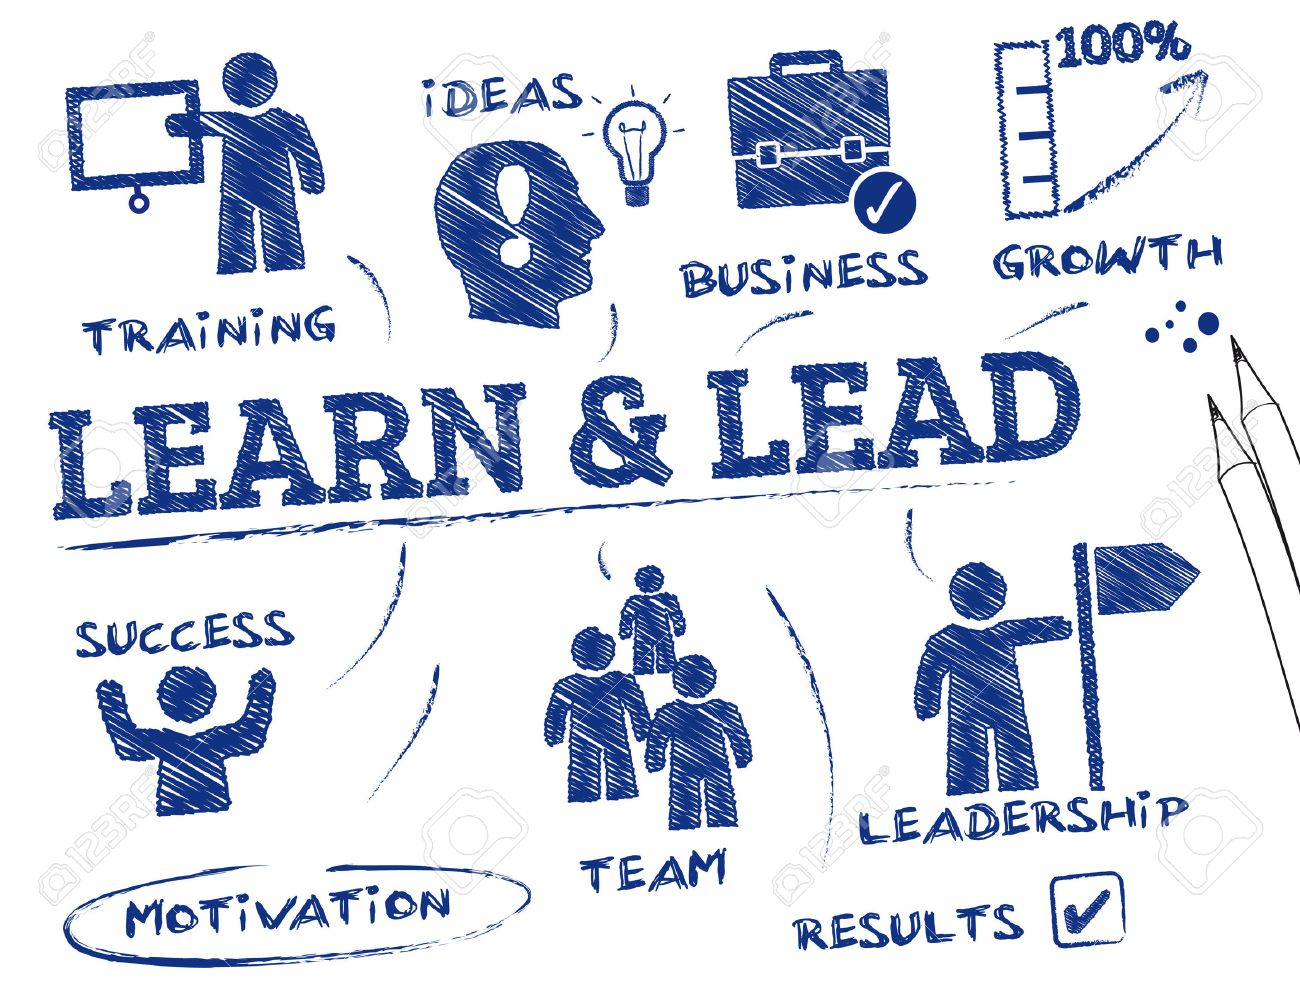 Learn and Lead. Chart with keywords and icons - 37108528